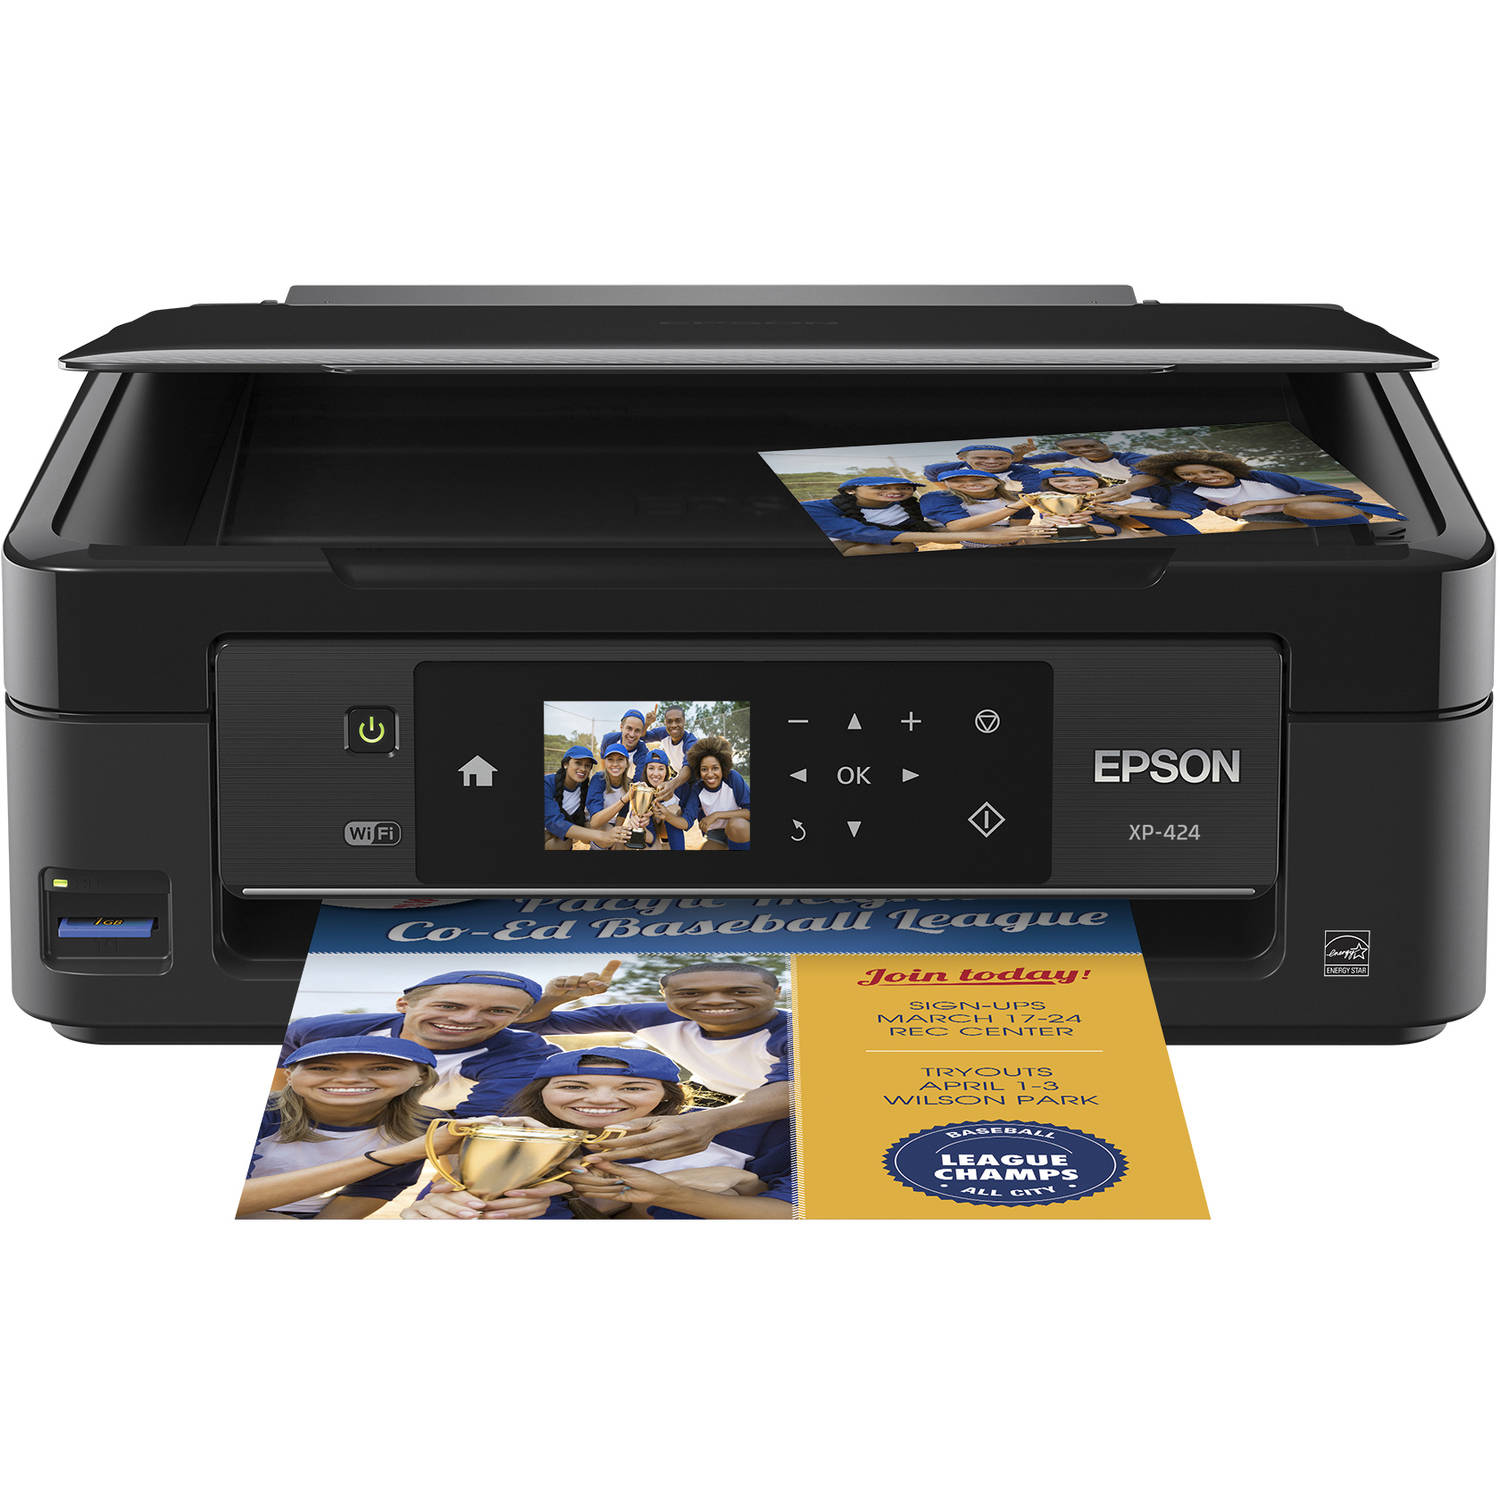 Epson Expression Home XP-424 - multifunction printer (color)